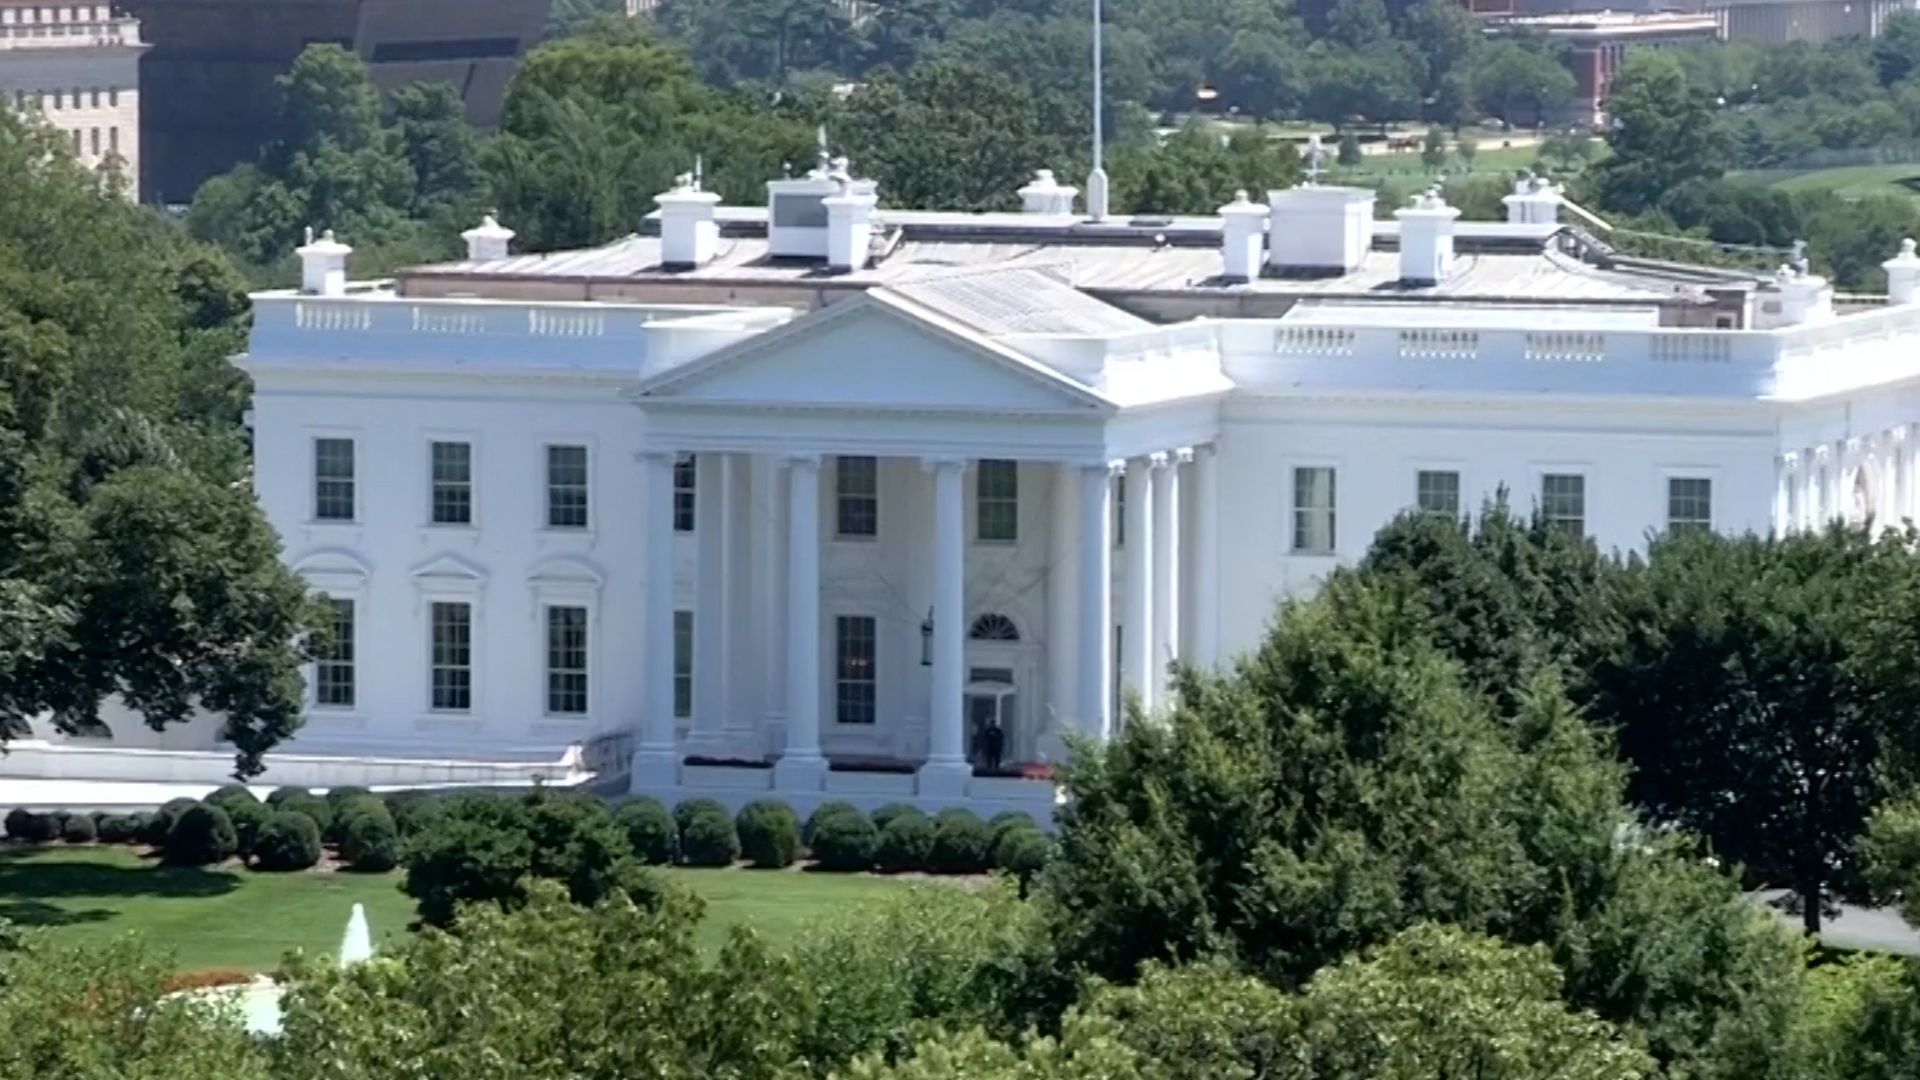 Two Birmingham area natives tasked with identifying contributions slaves made at the White House